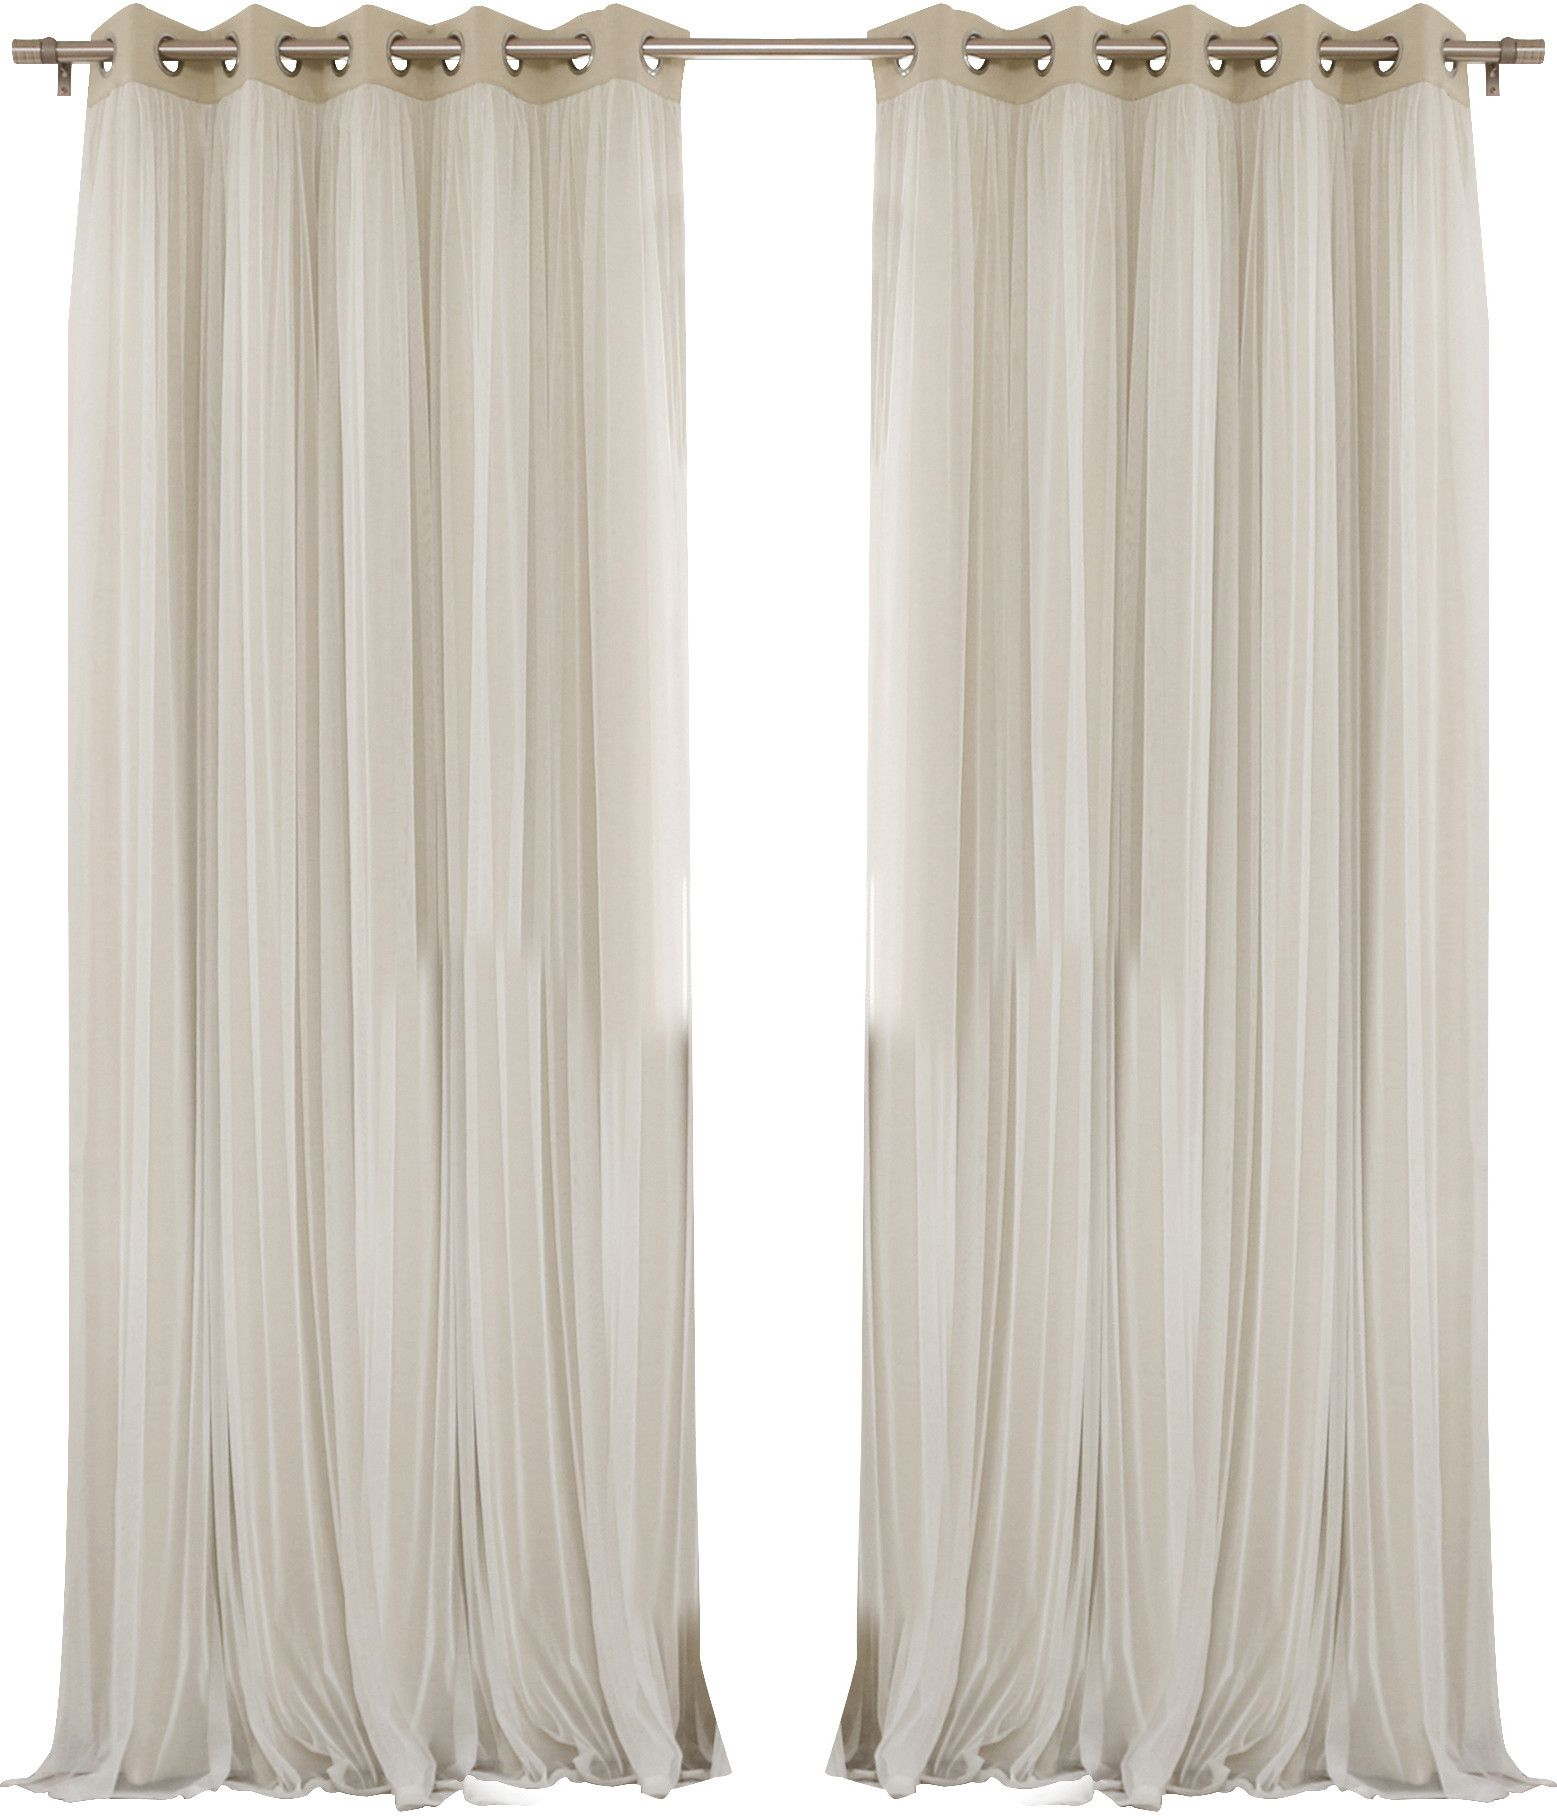 You Ll Love The Anabelle Tulle Thermal Blackout Energy Efficient